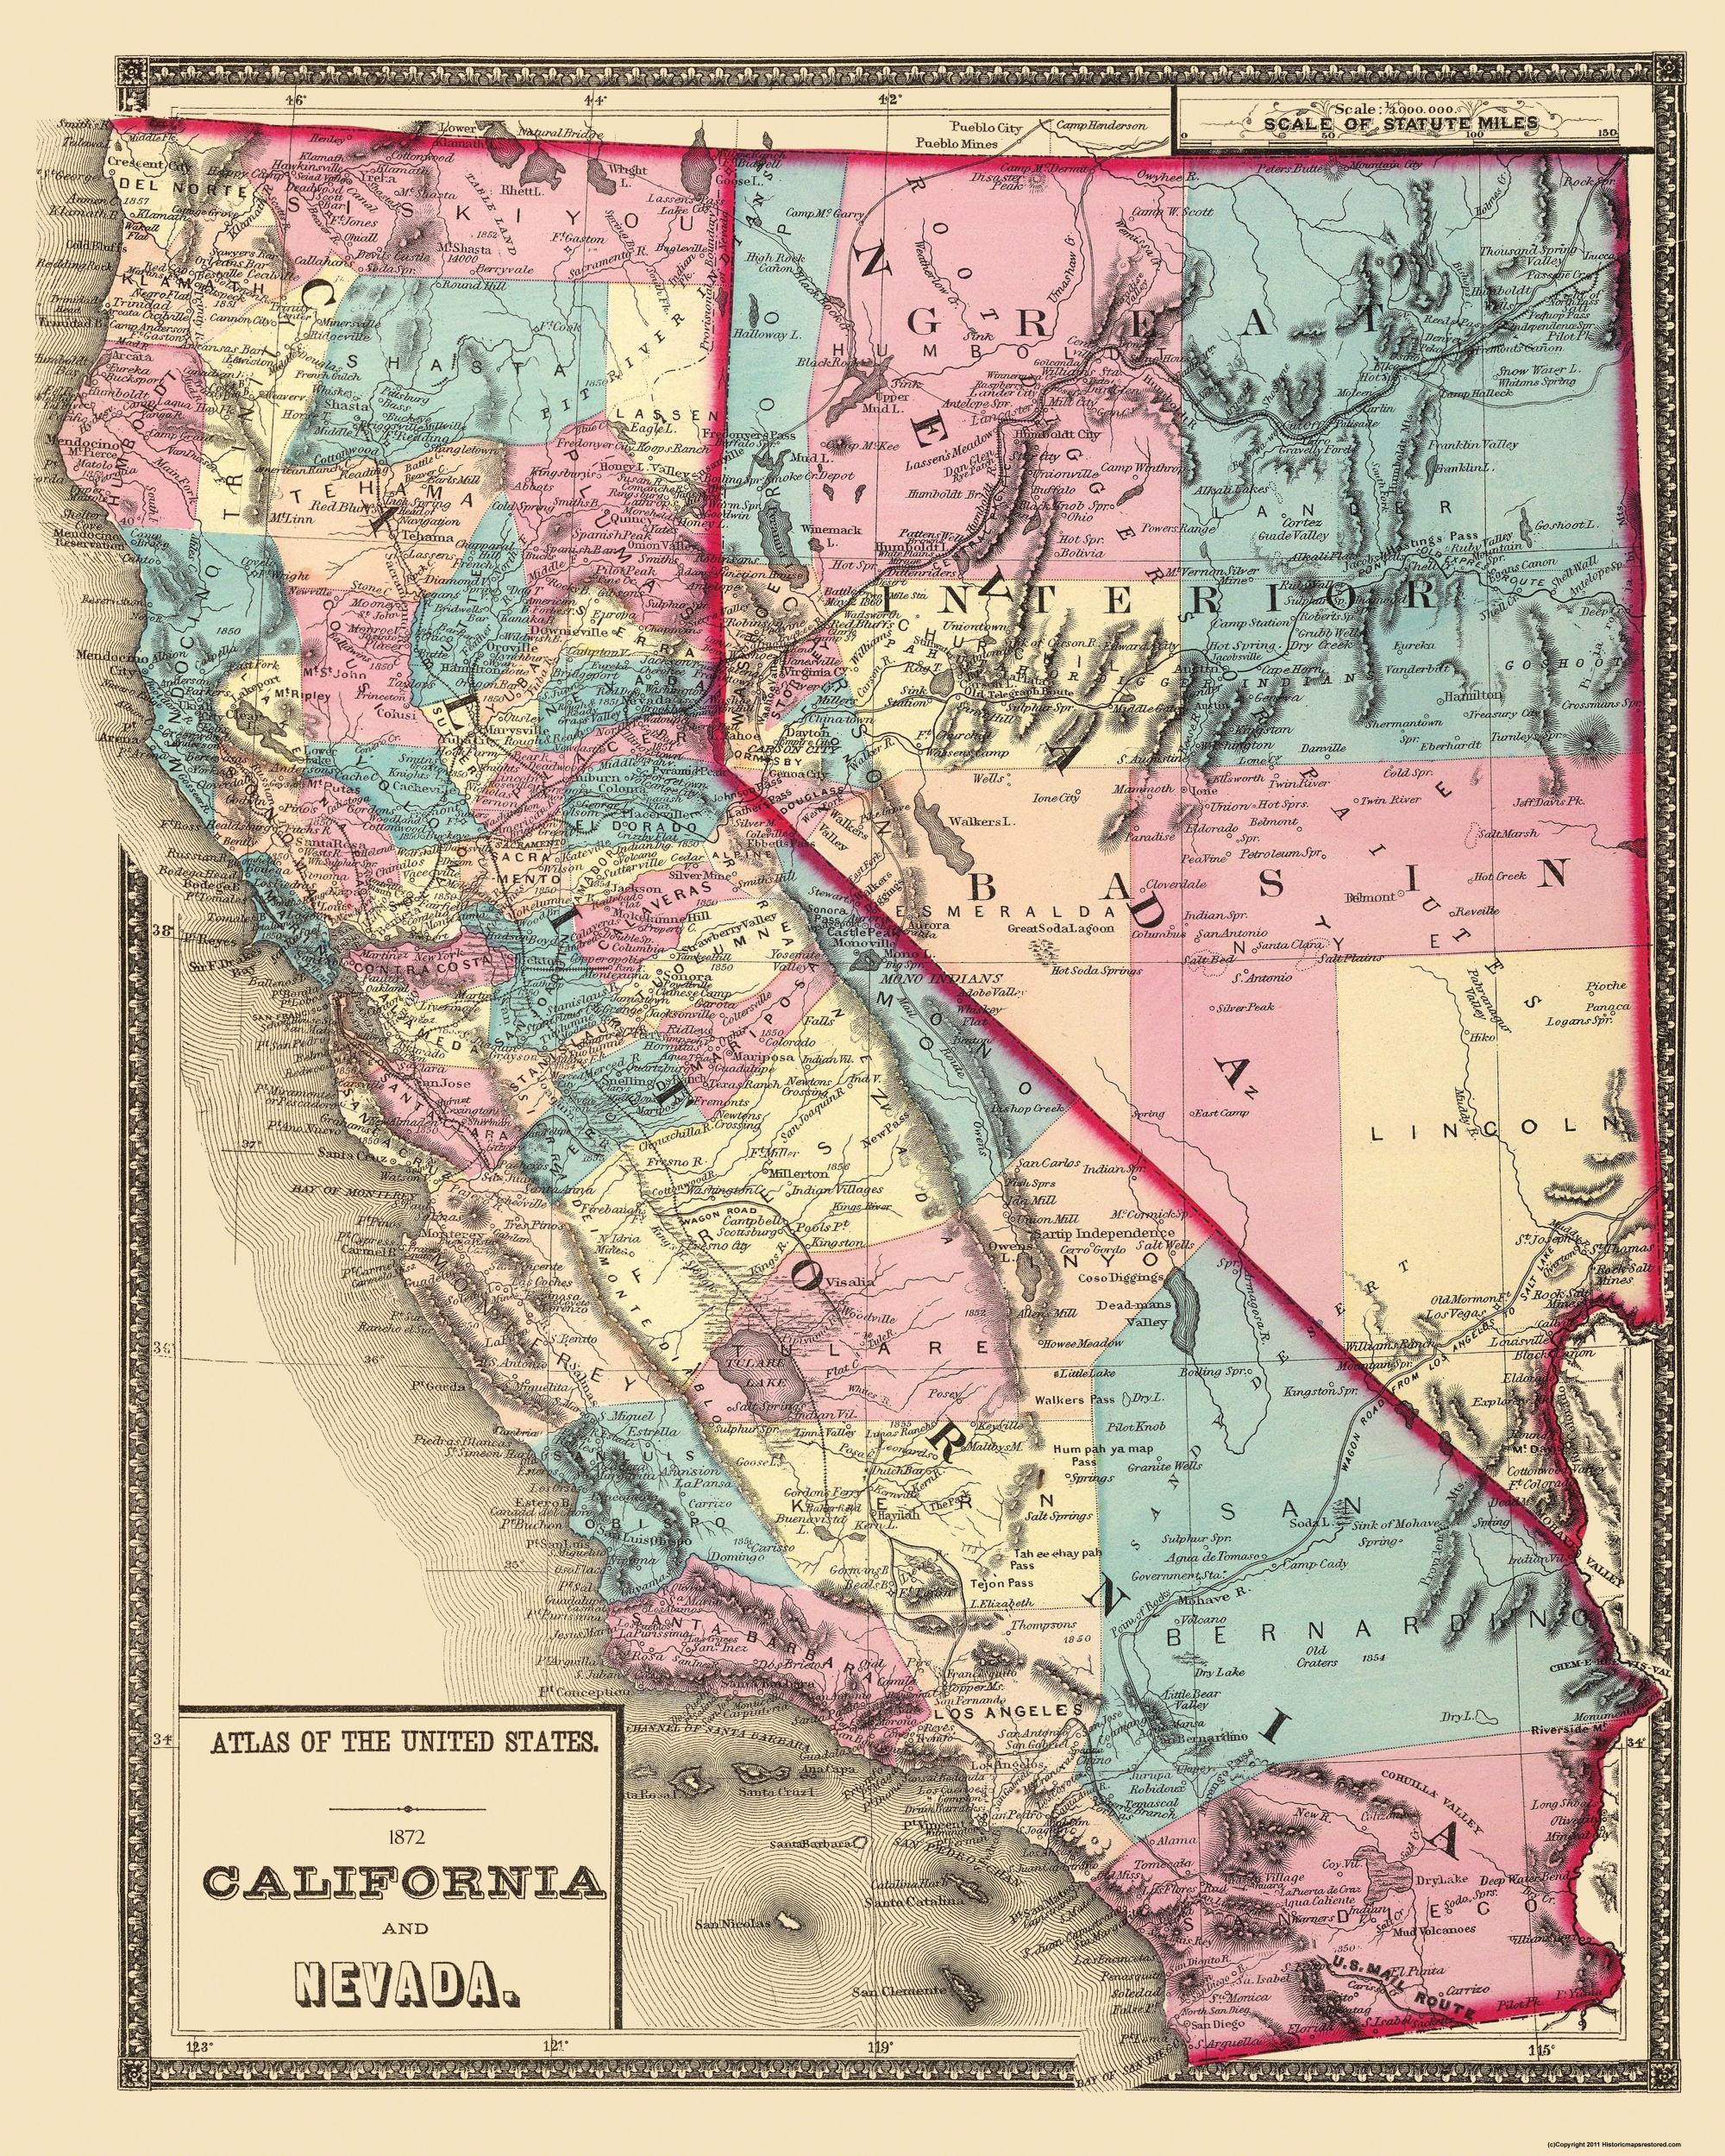 Old State Map - California, Nevada - 1872